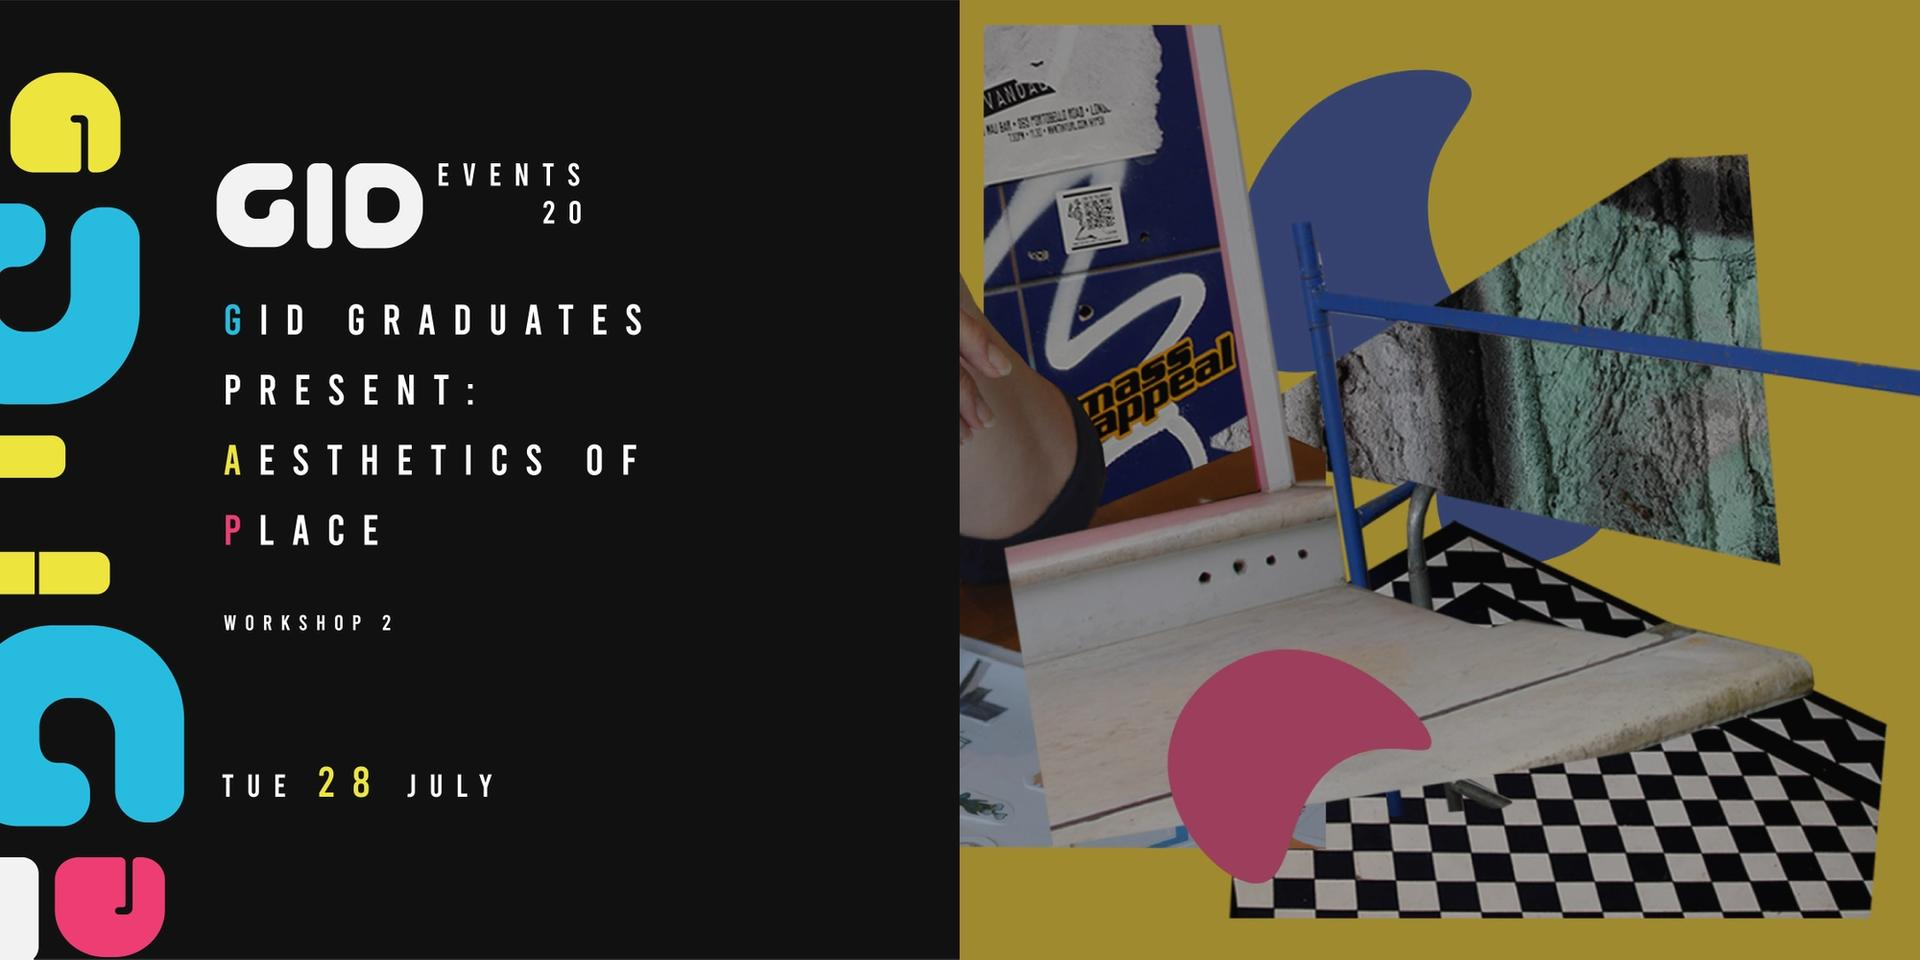 RCA2020 Events_GID Aesthetics of Place_Workshop 2